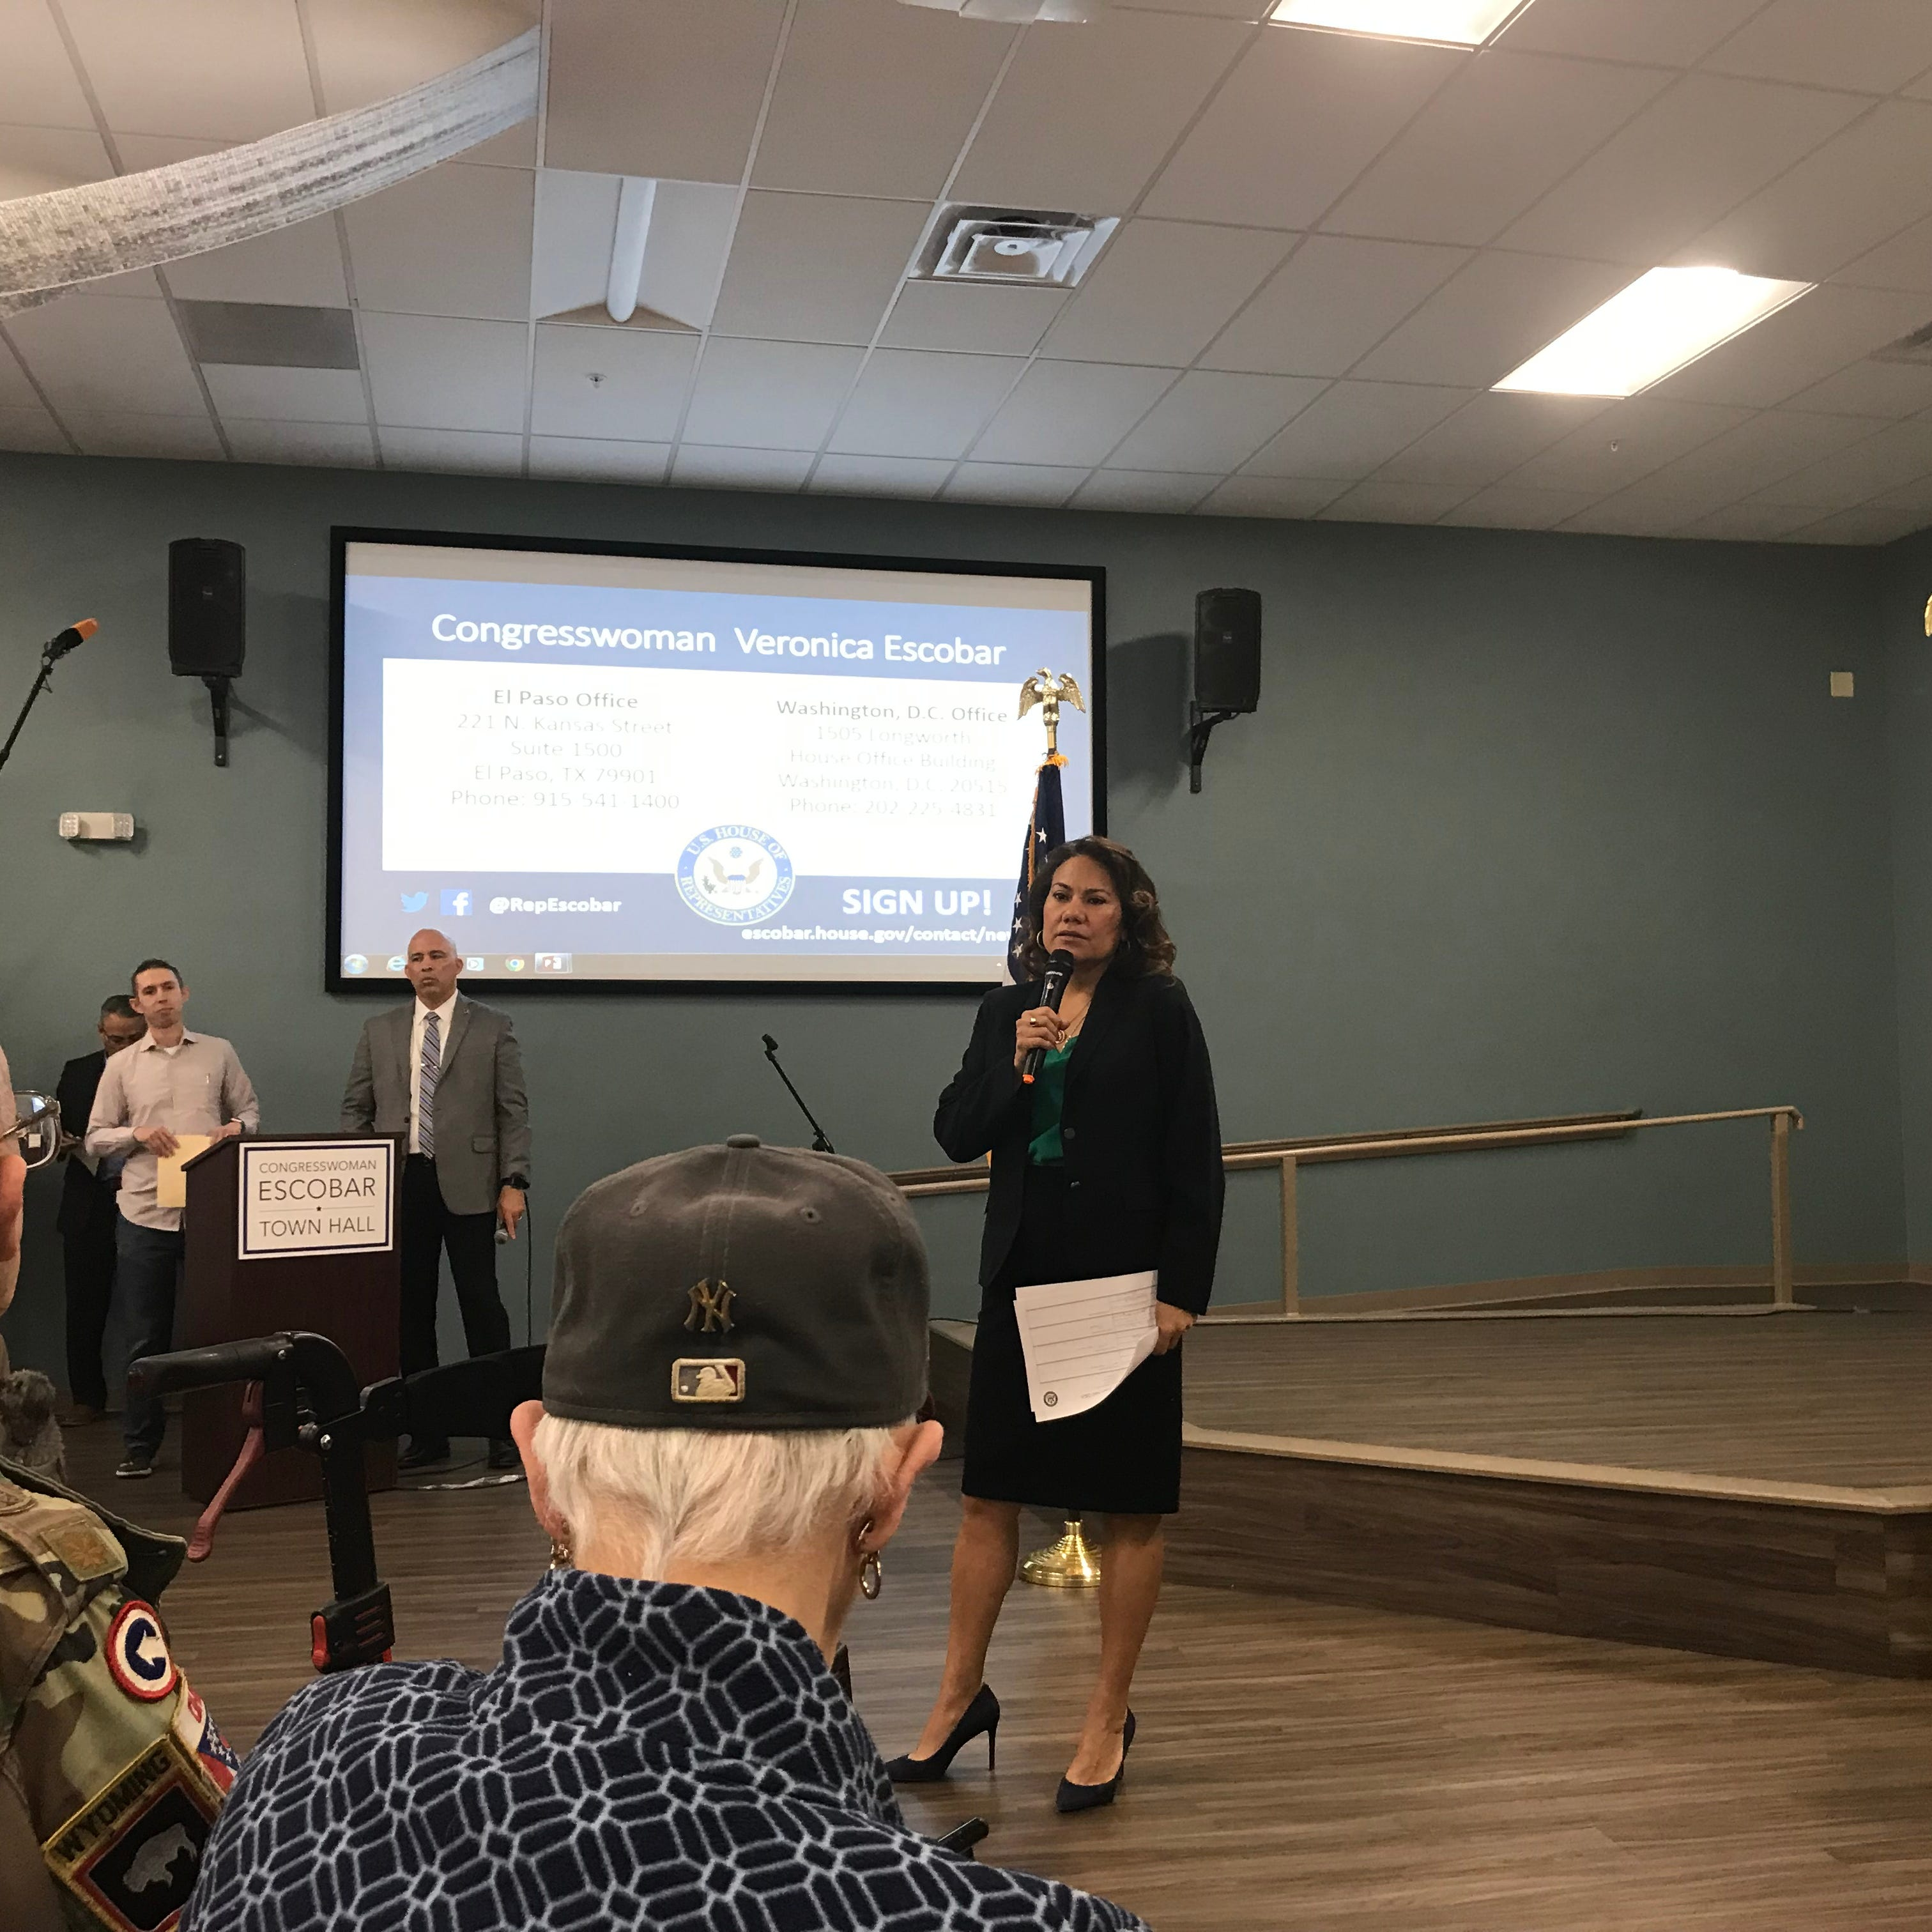 US Rep. Veronica Escobar discusses Heather Wilson, immigration, gun control at town hall